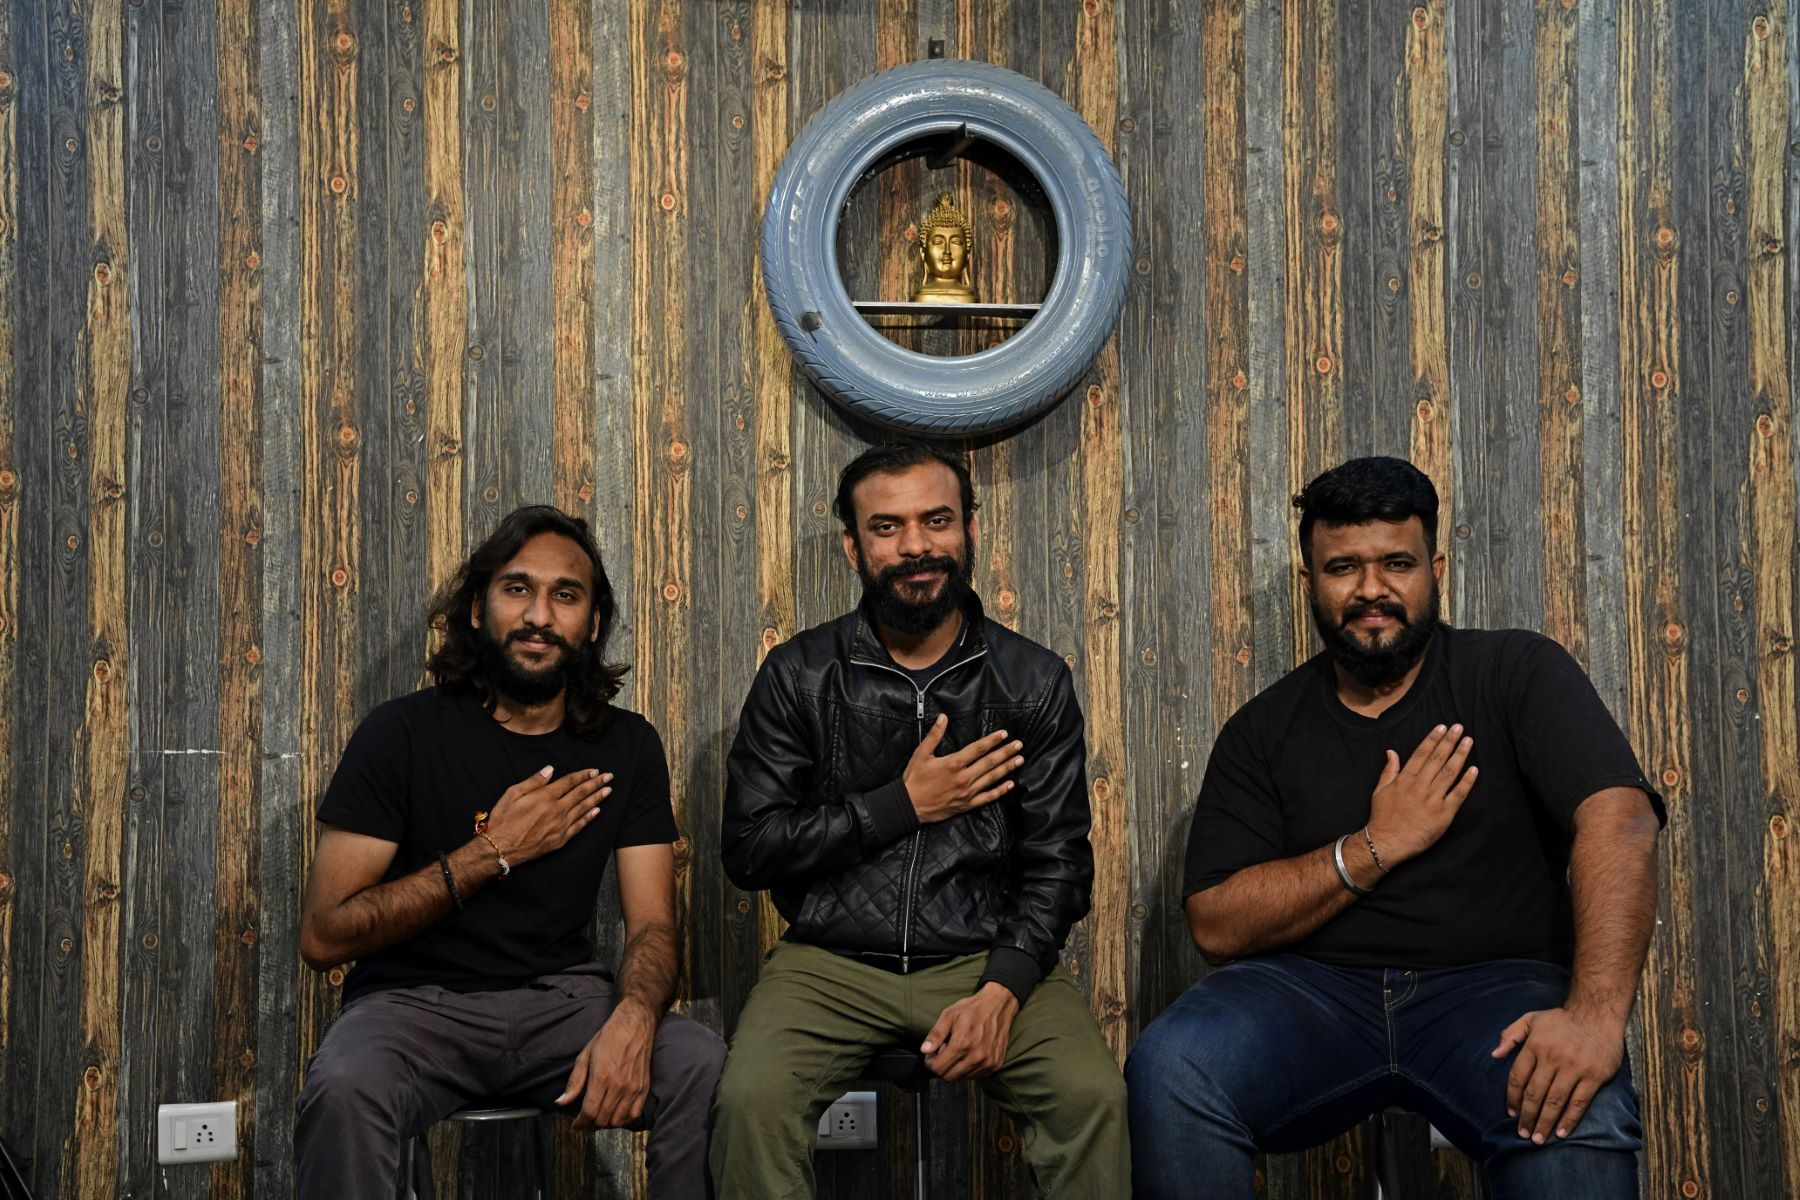 Viral Patel, Parth Bhavsar, Raj Shah of Ehsaas band, pose for a photograph at their studio, sharing the message: 'Follow your heart'.